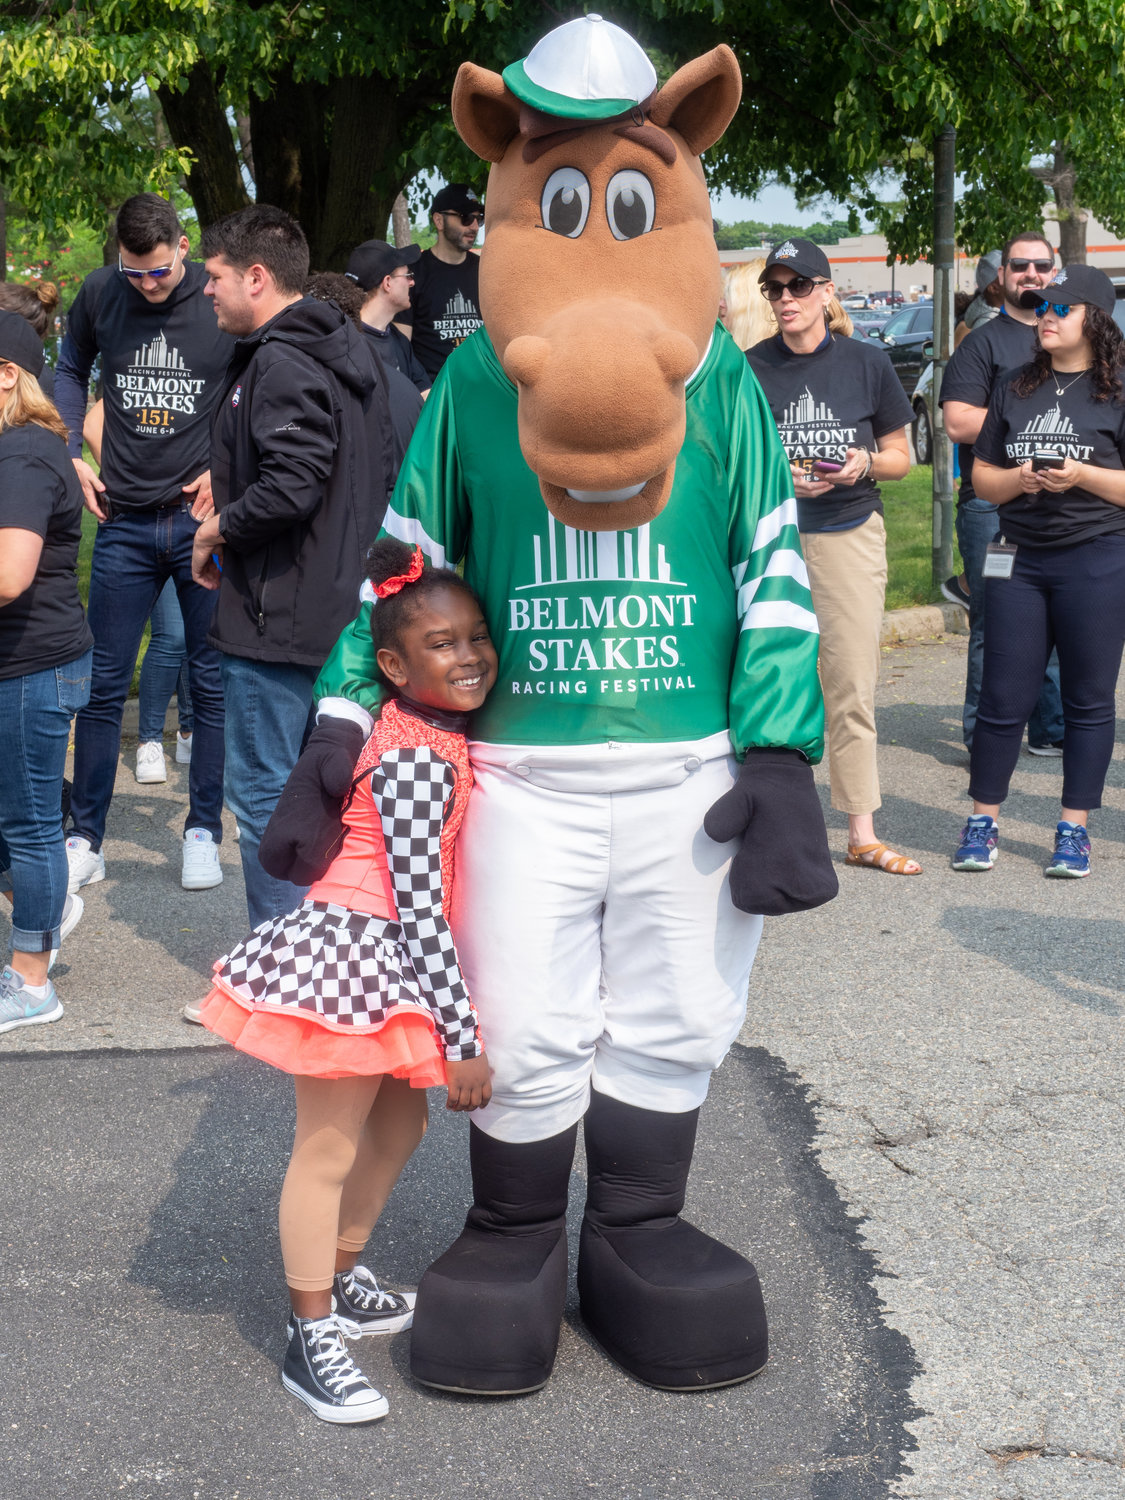 Stephanie Luke, 5, took a picture with the Belmont Stakes horse.